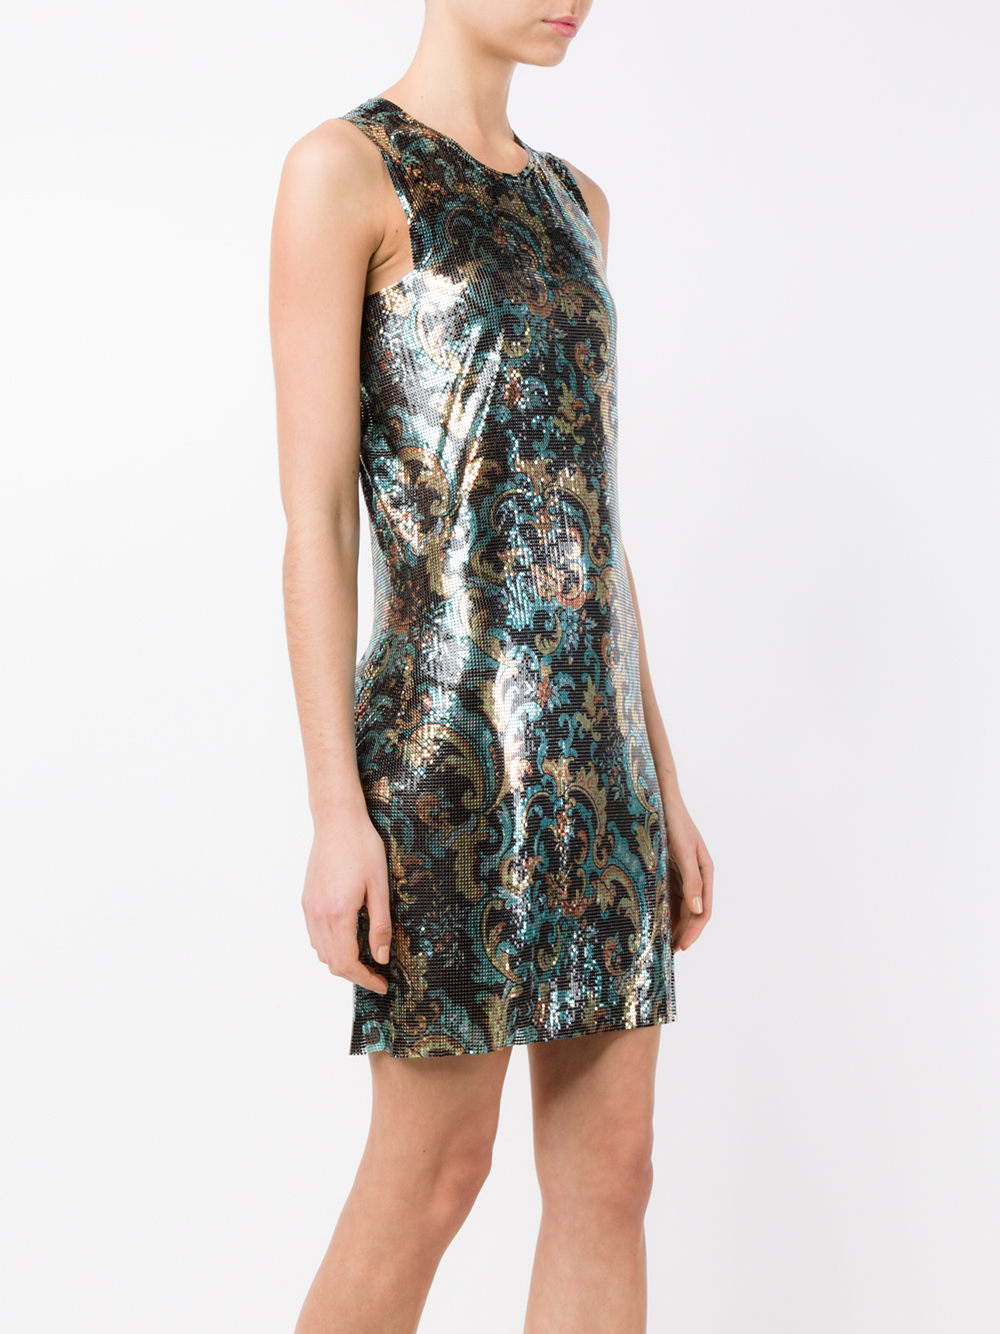 Paco Rabanne Floral Chainmail Dress Lyst